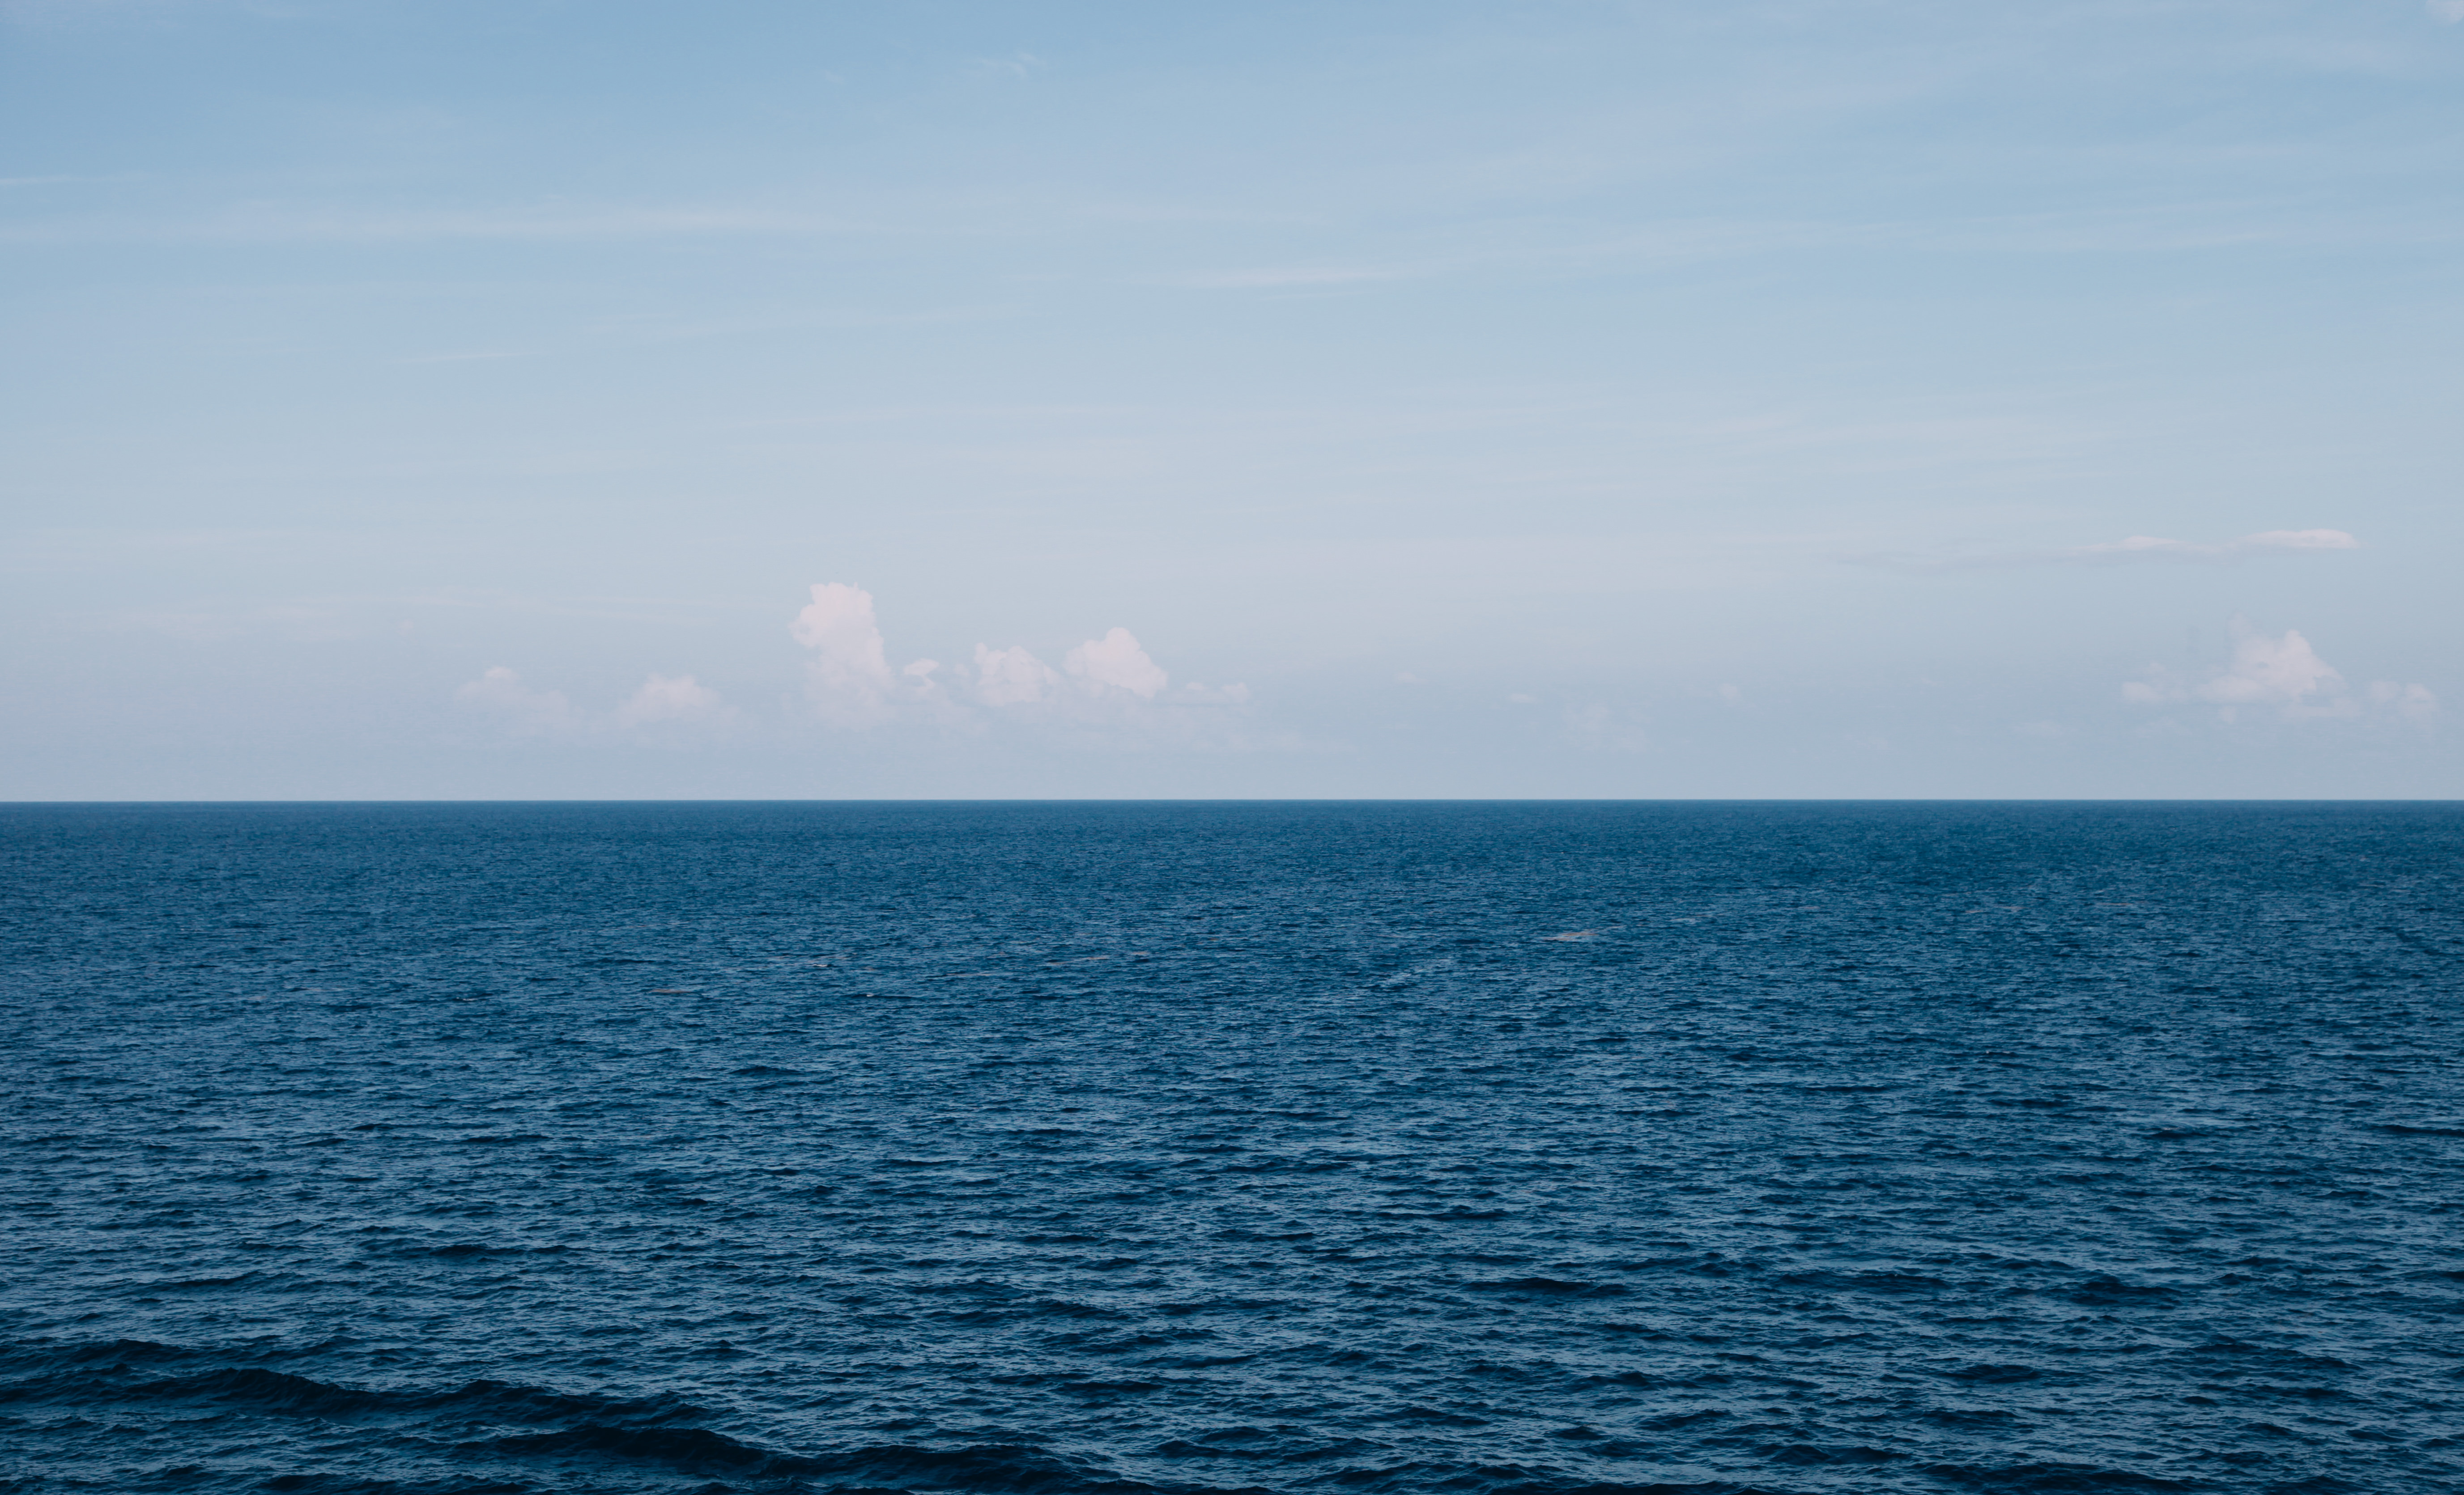 Black Iphone Wallpaper Hd Blue Body Of Water Under White Clouds 183 Free Stock Photo